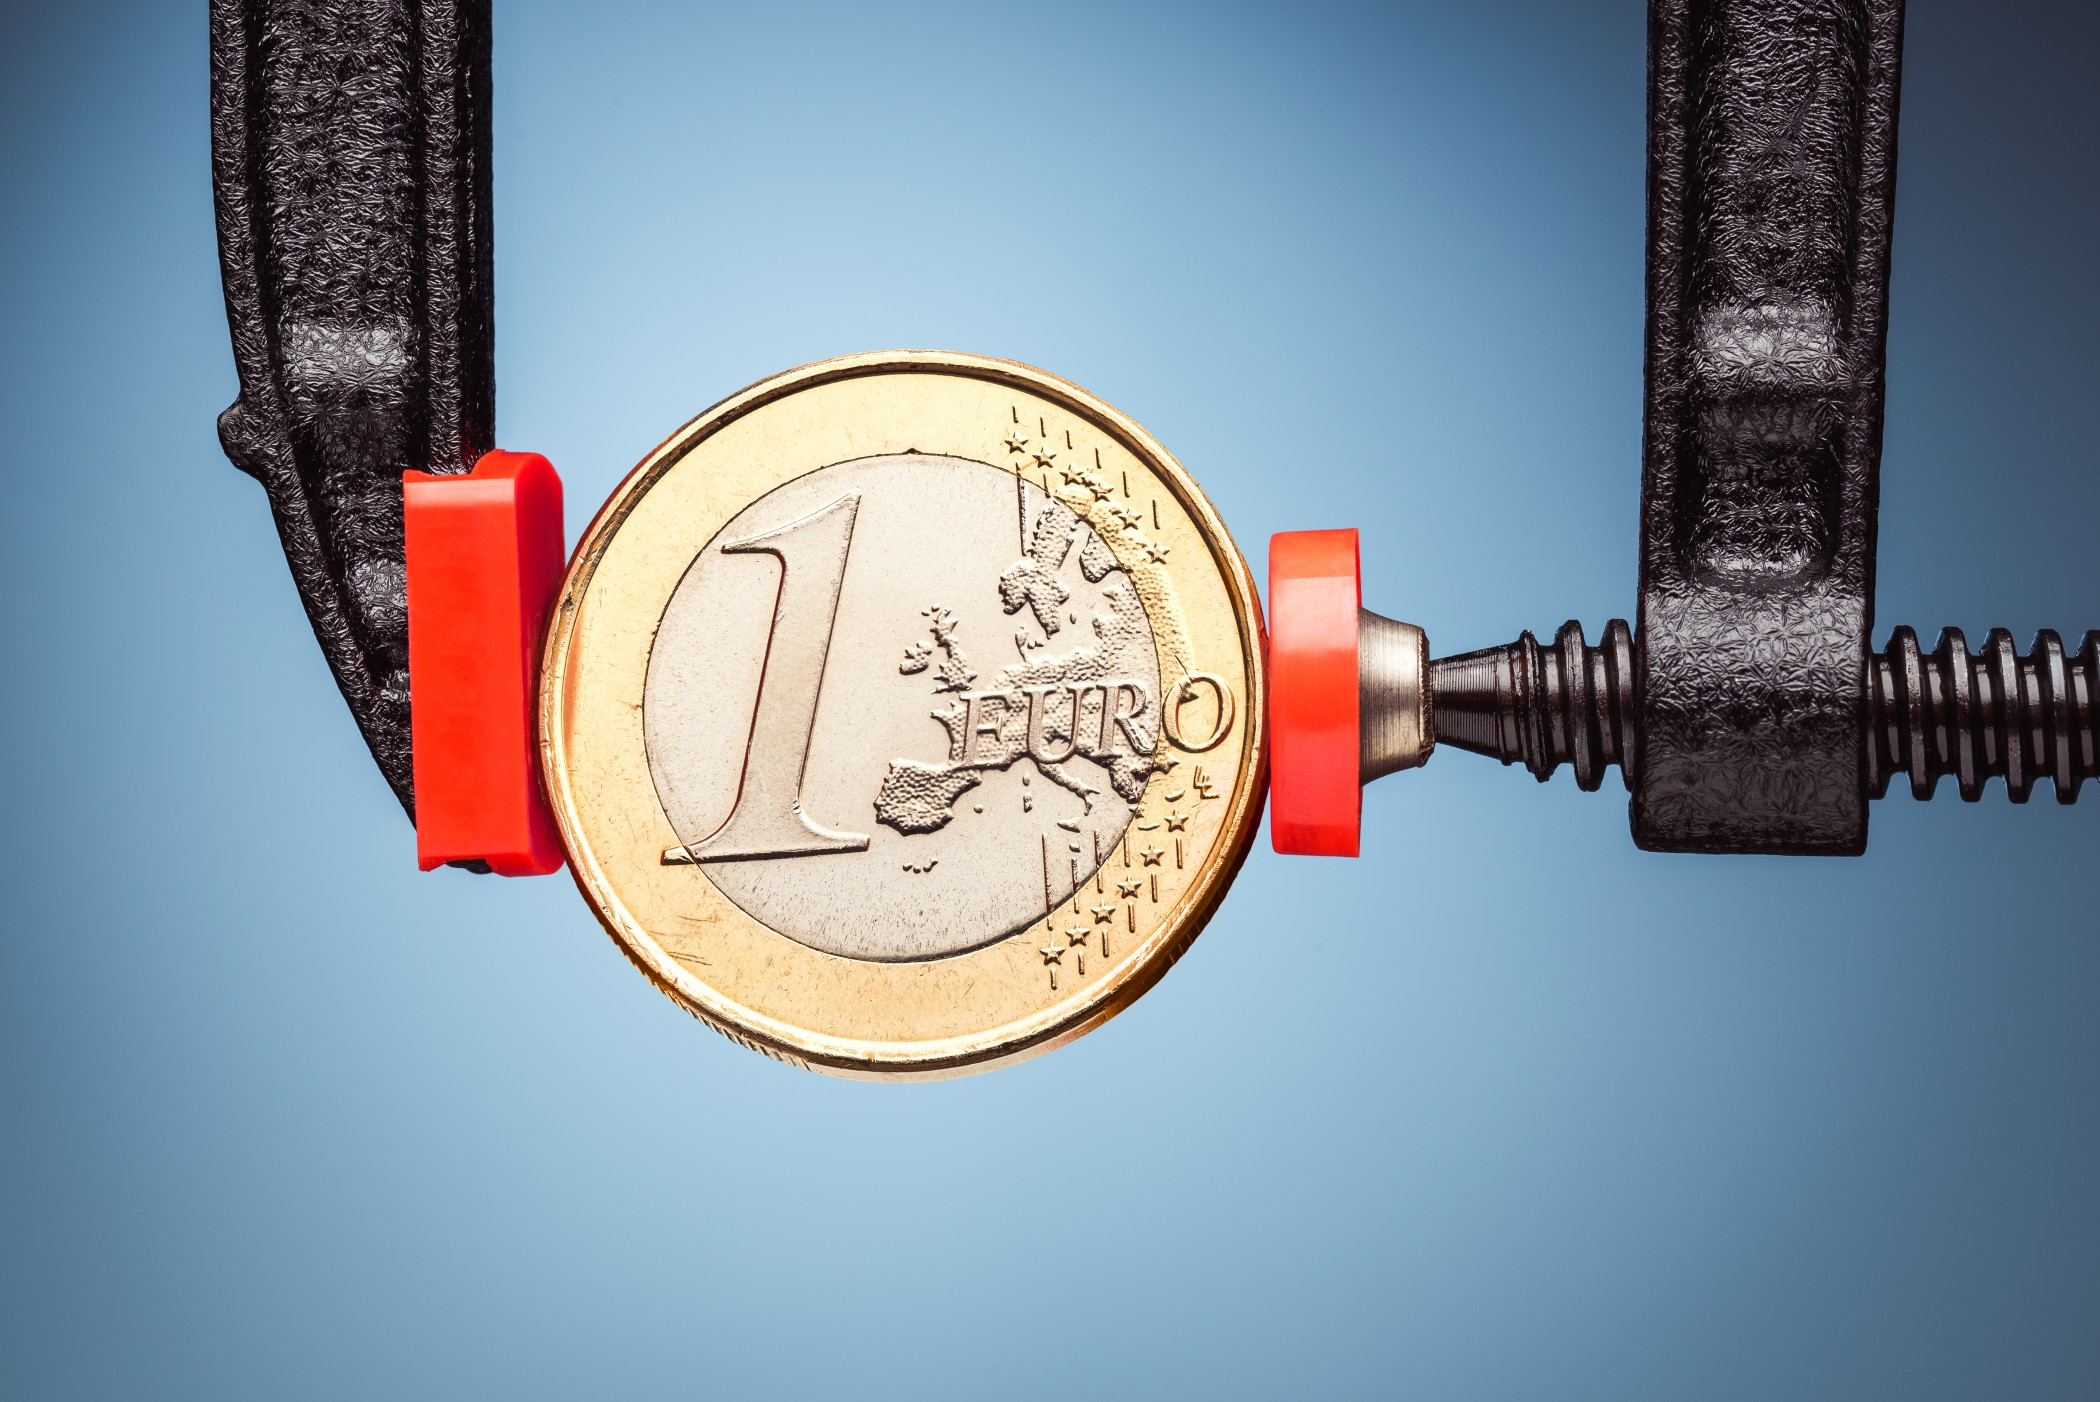 One Euro coin under pressure. Crisis concept.